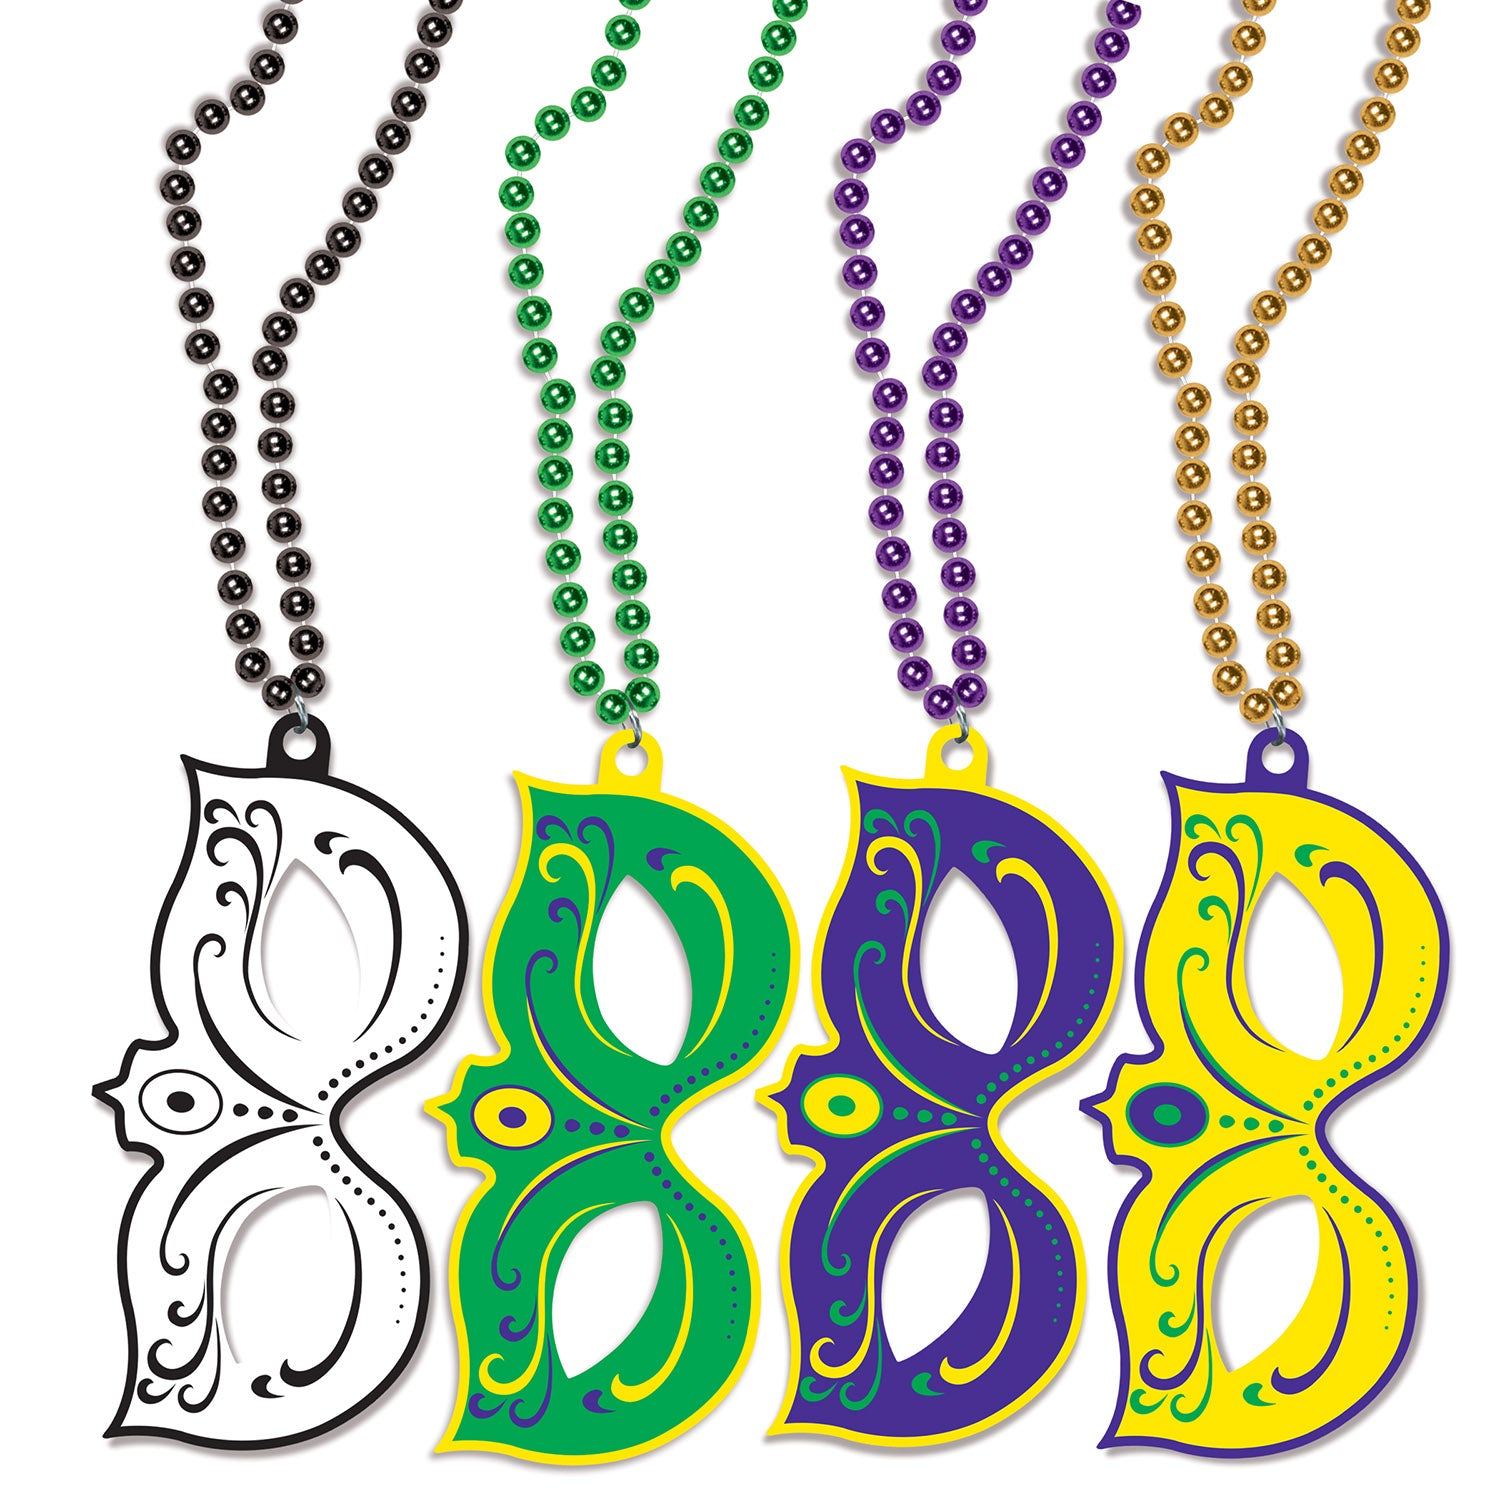 Mardi Gras Masks w/Beads (4/Pkg) by Beistle - Mardi Gras Theme Decorations